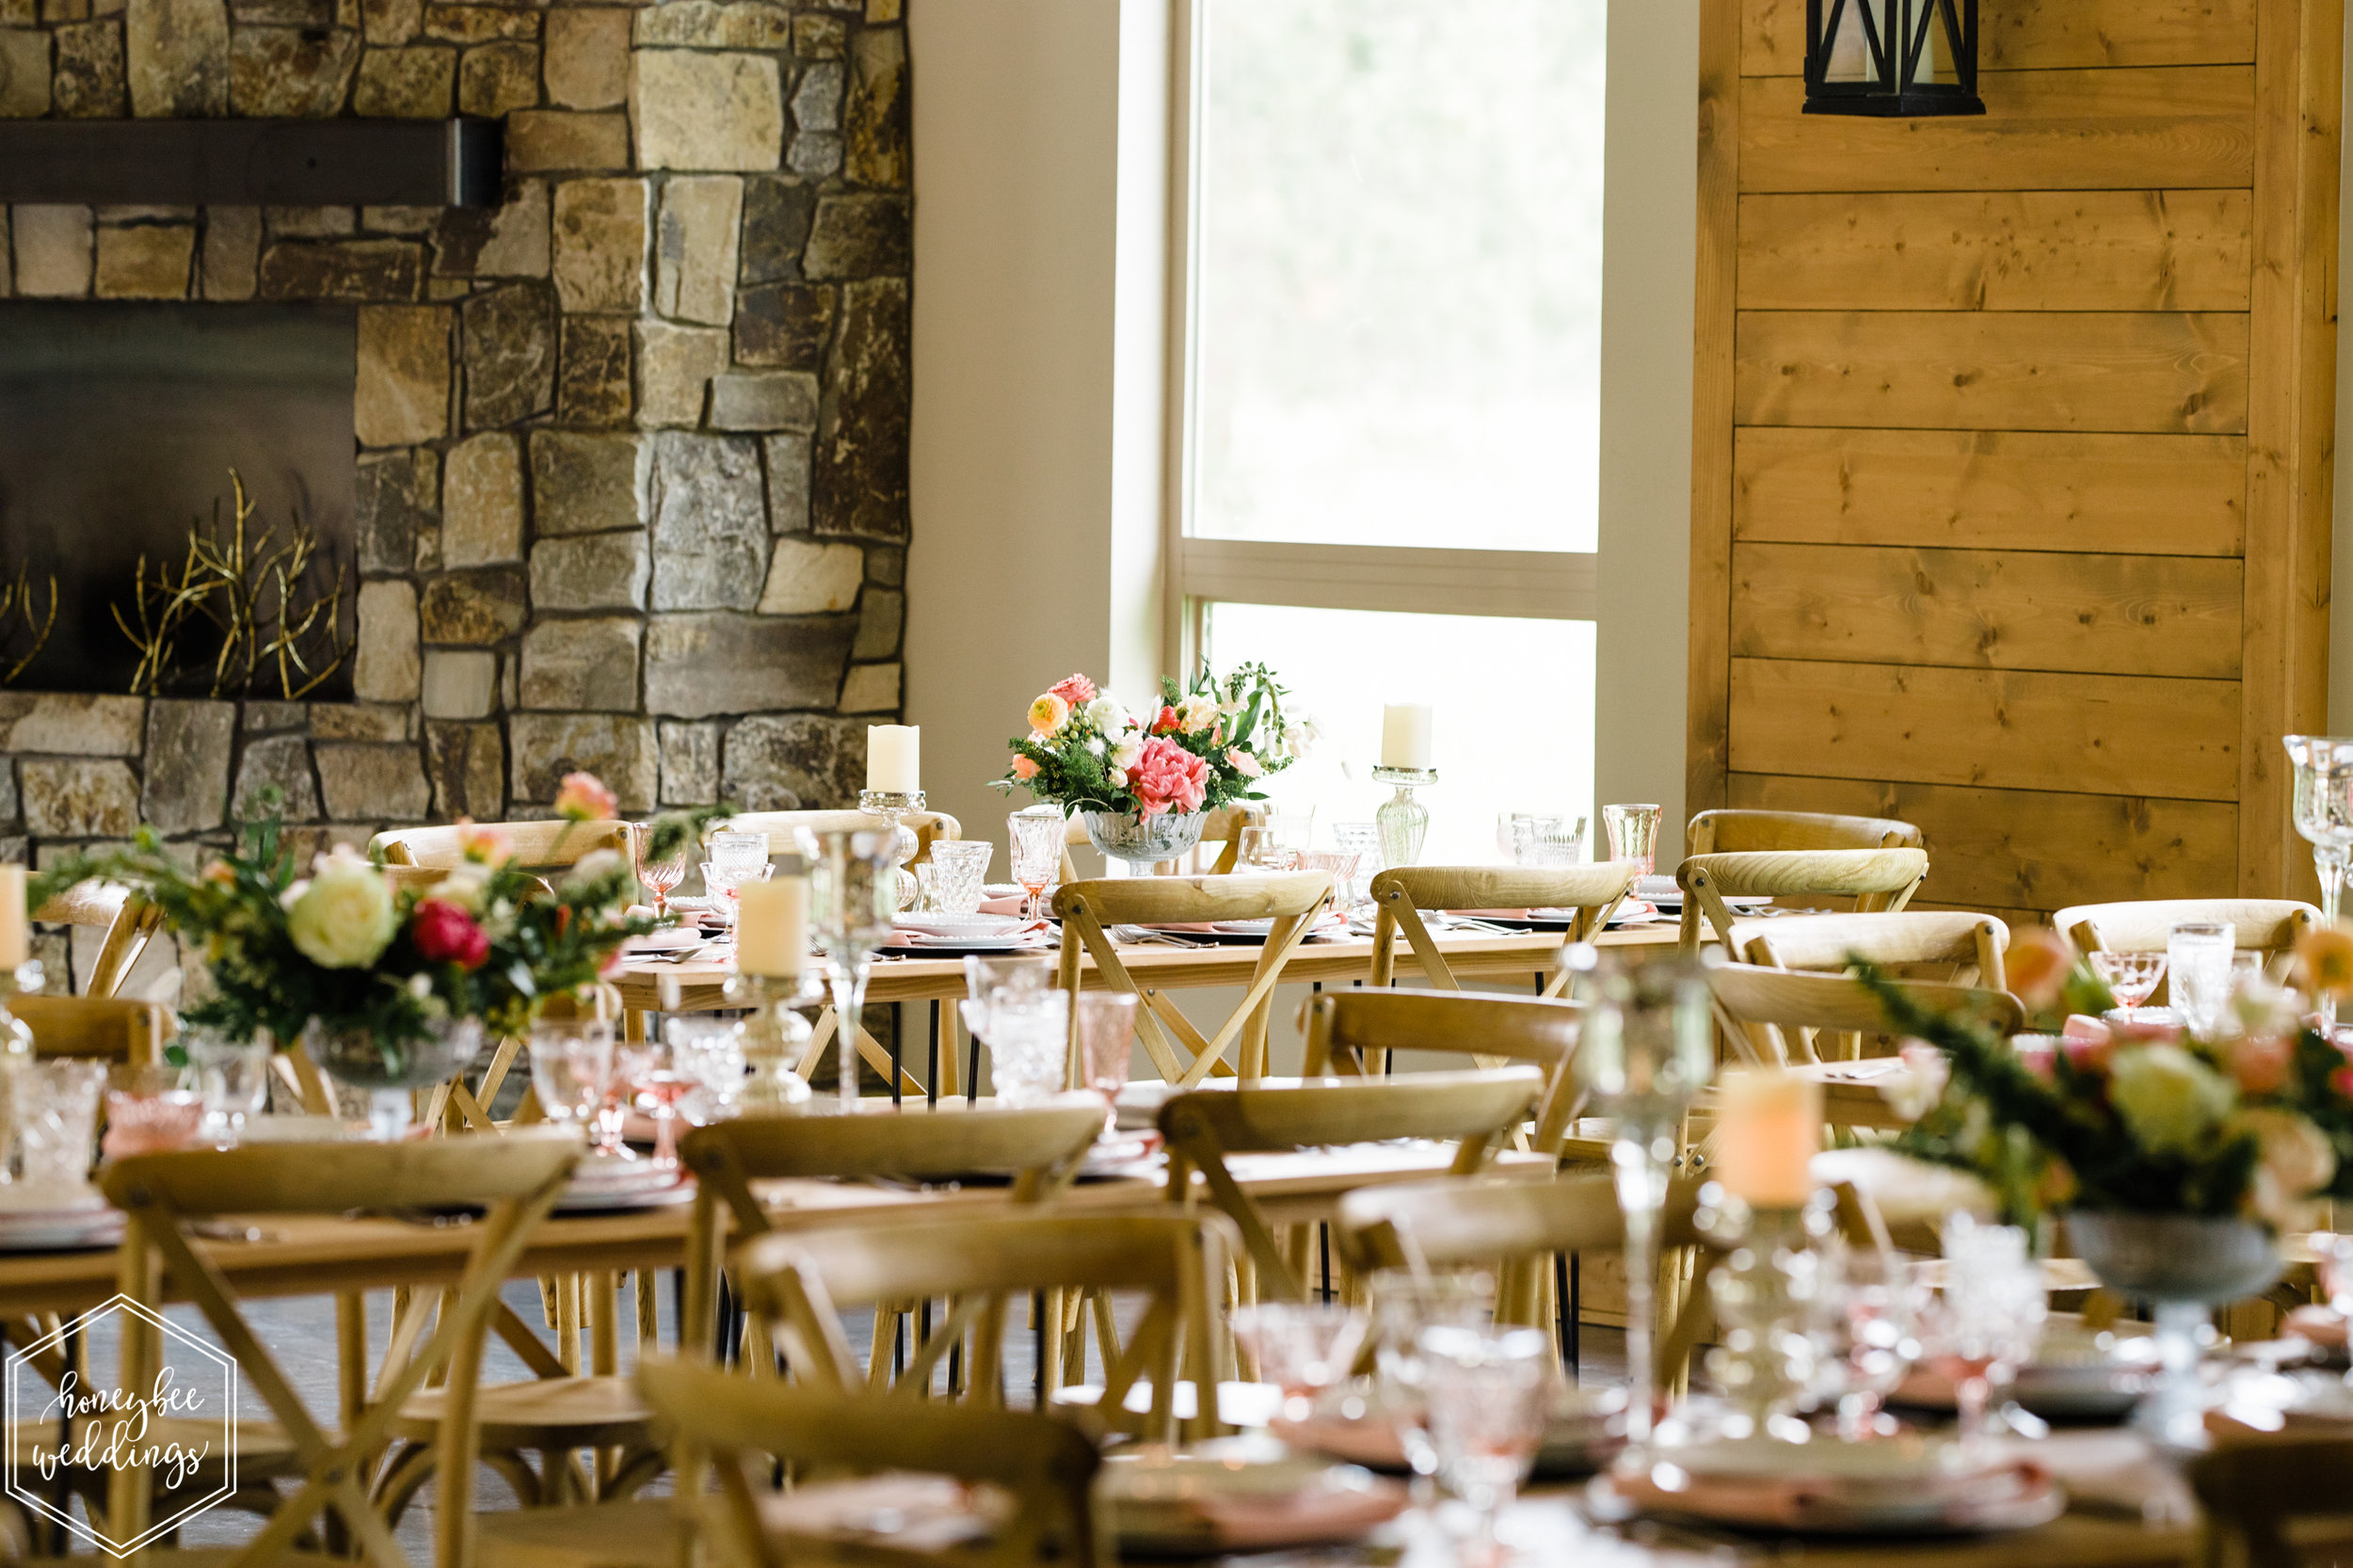 011Coral Mountain Wedding at White Raven_Honeybee Weddings_May 23, 2019-28.jpg